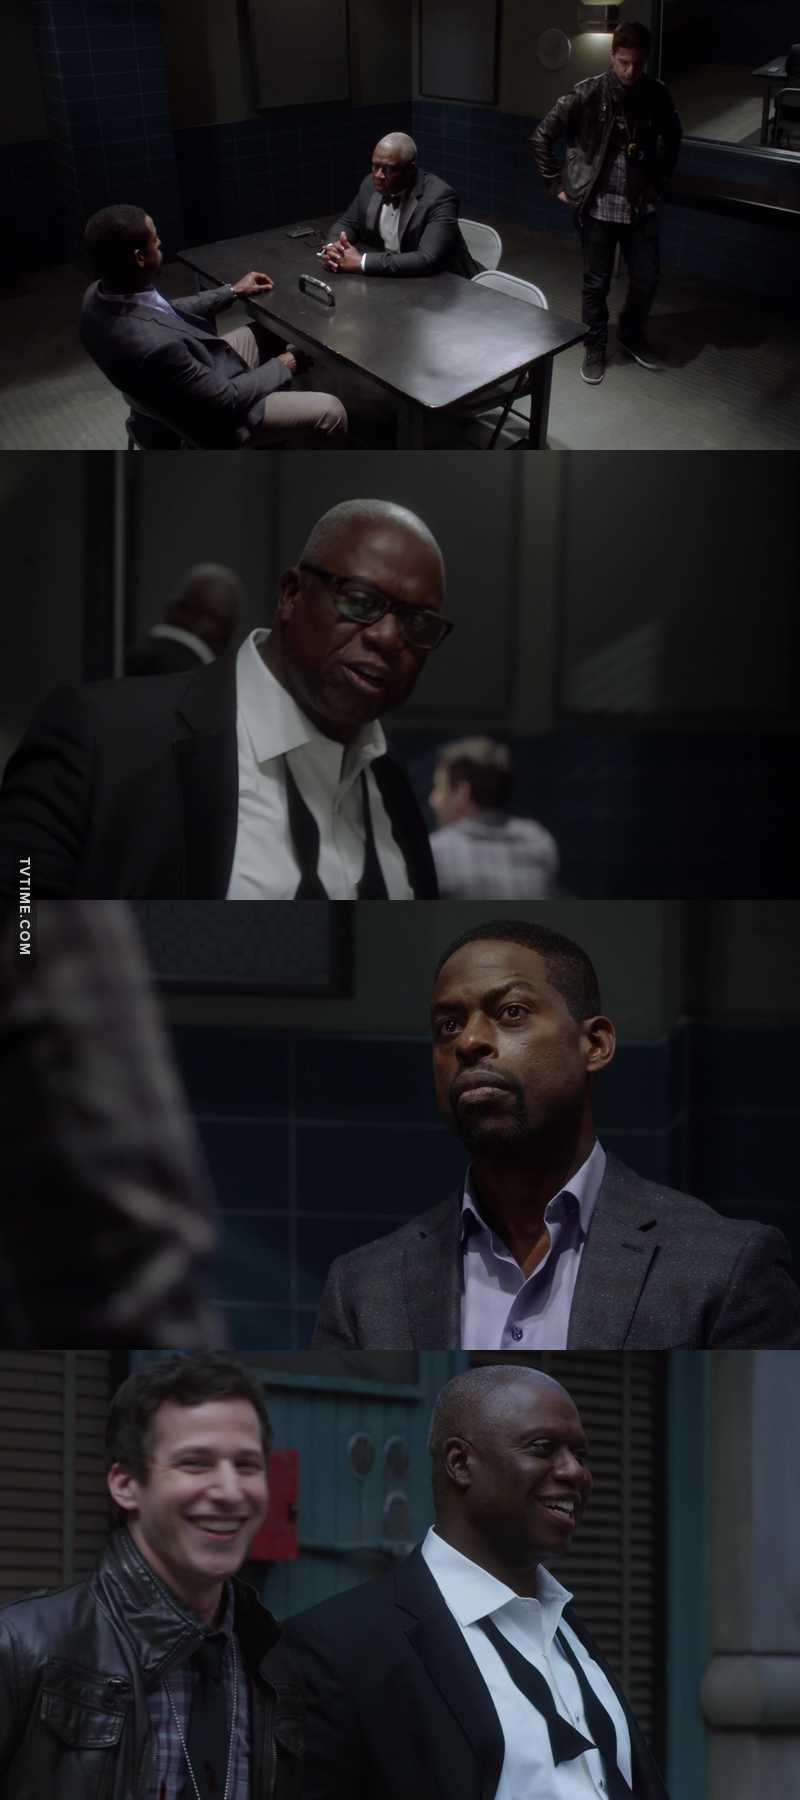 This episode proves that you don't need an abundance of characters and crazy story lines to make entertaining content. It justifies my appreciation for Brooklyn Nine-Nine; the show runners clearly understand the impact of good writing and refined acting.